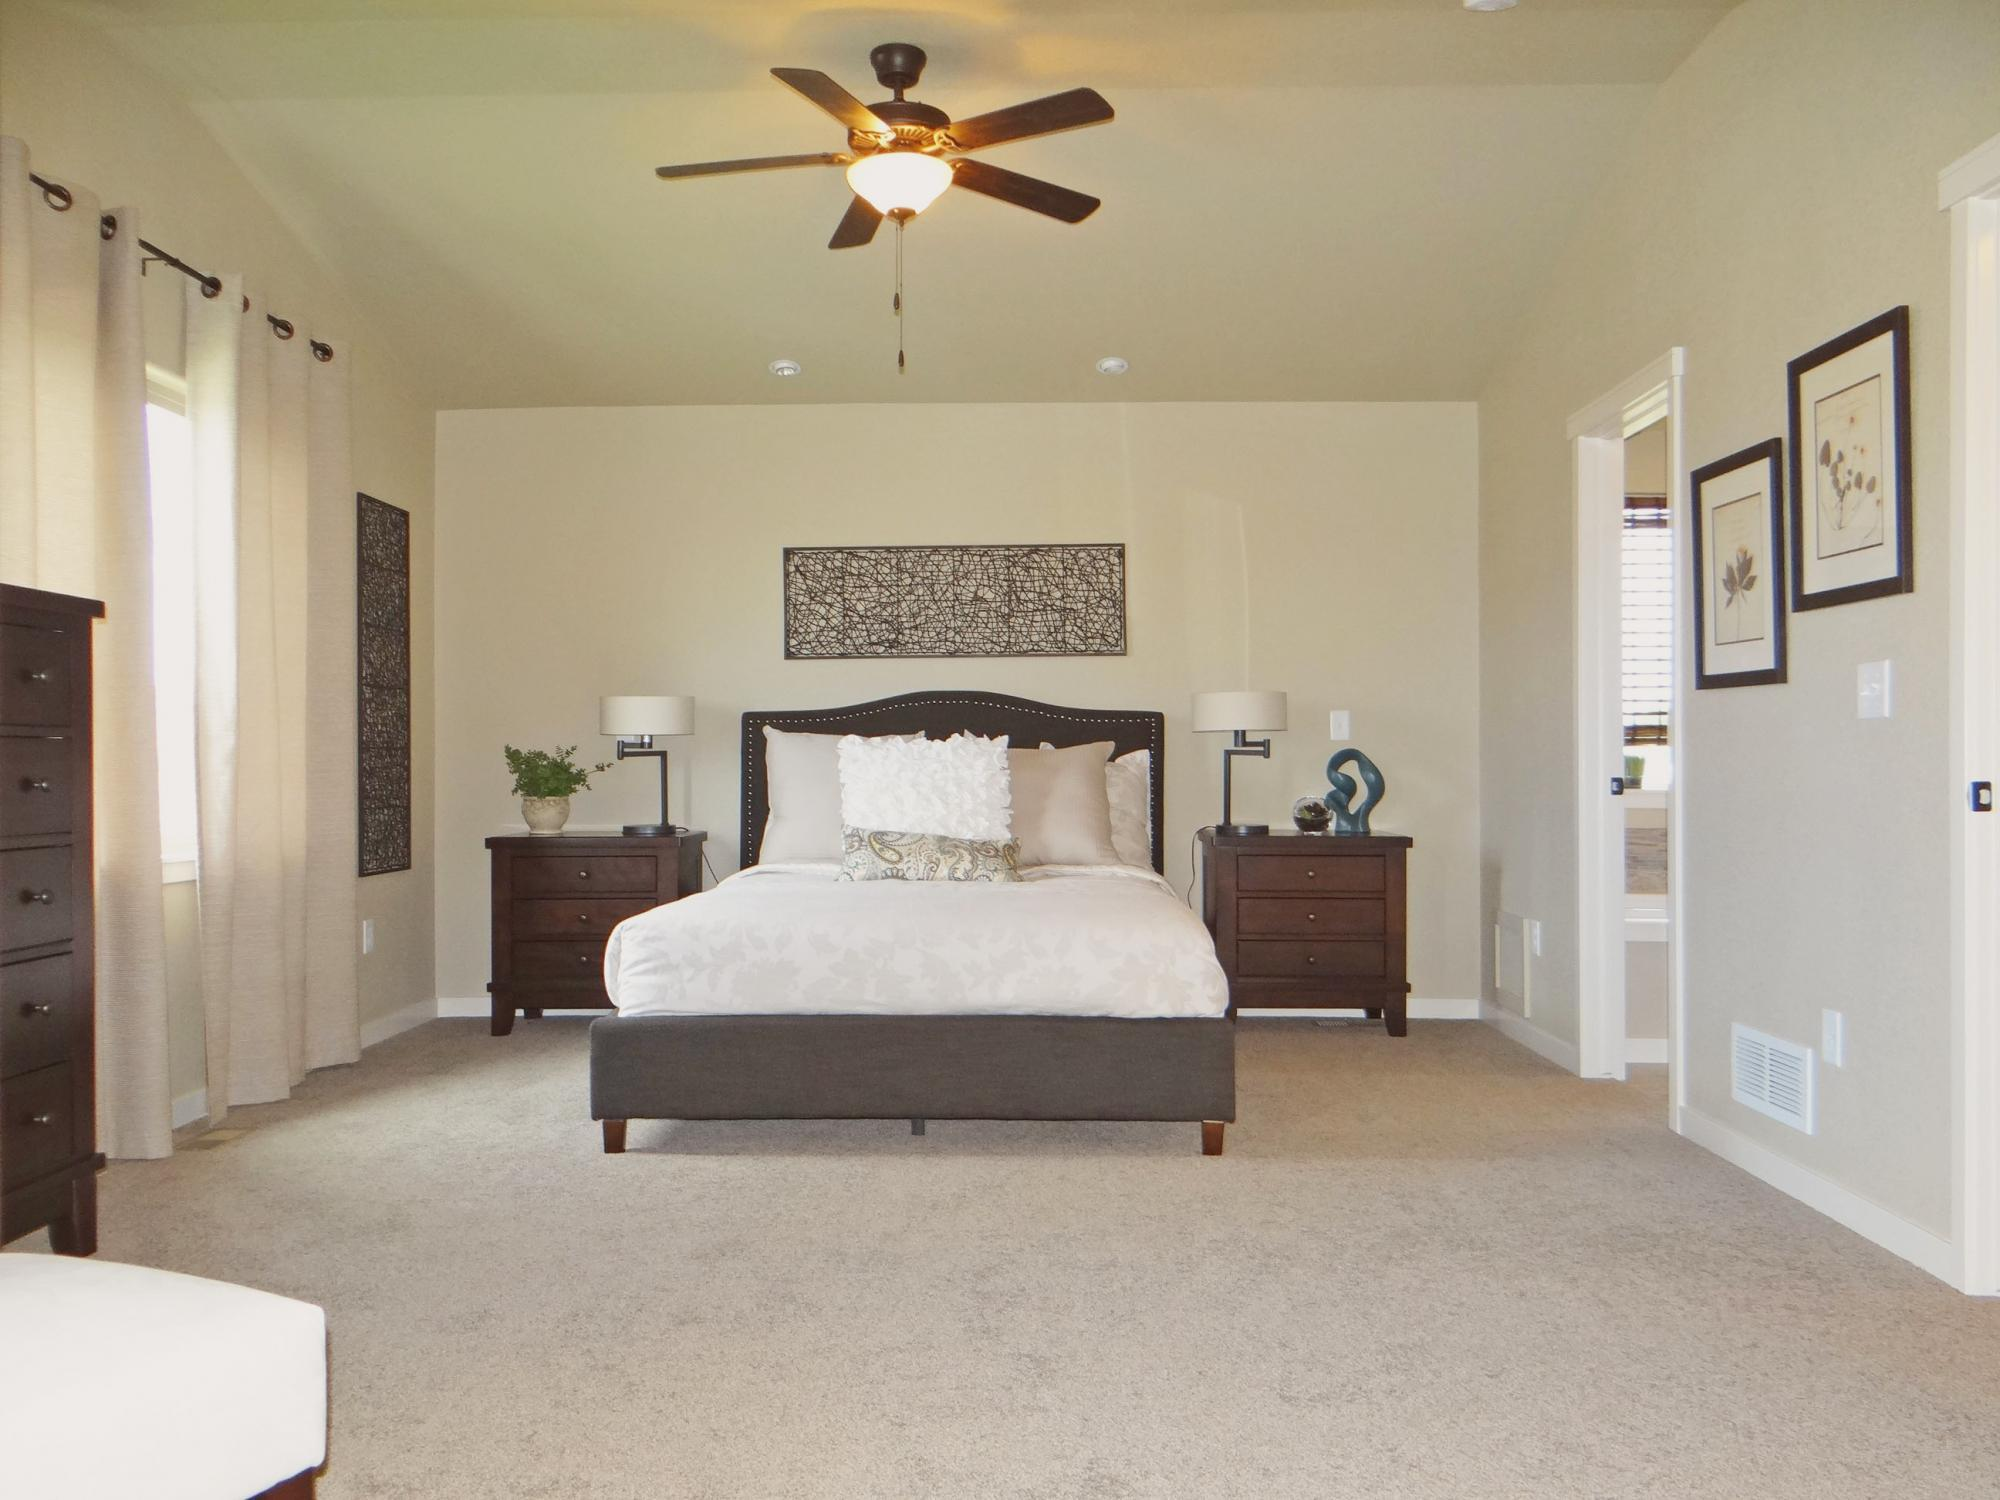 Bedroom-in-The Siena-at-Conestoga-in-Ault